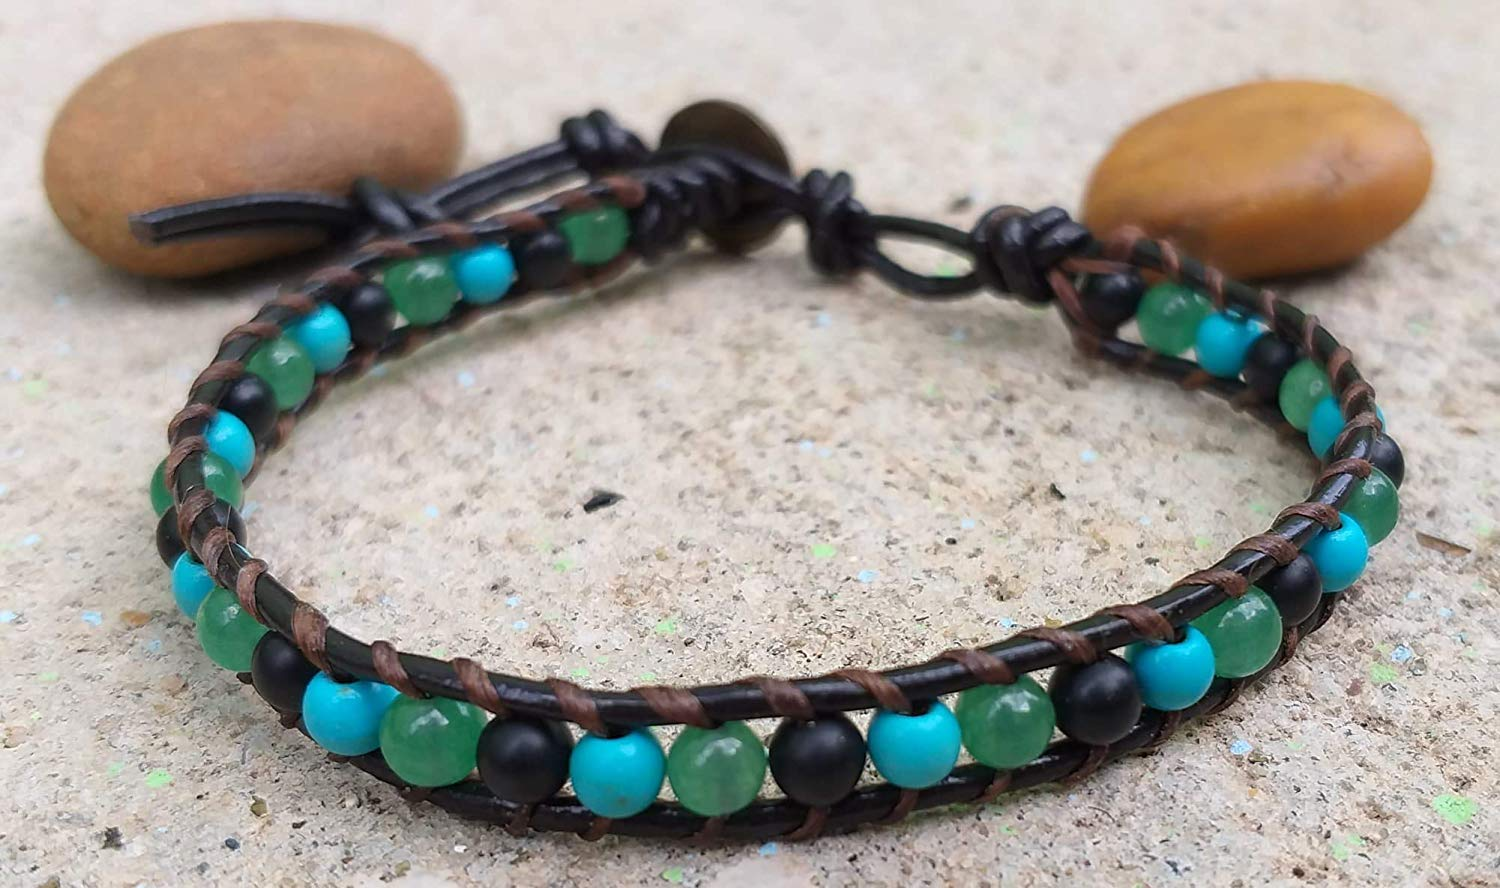 Wrap anklets,turquoise stone anklets,Onyx stone anklets,Green jade stone anklets,Use as a gift, It is fashionable for men and women.